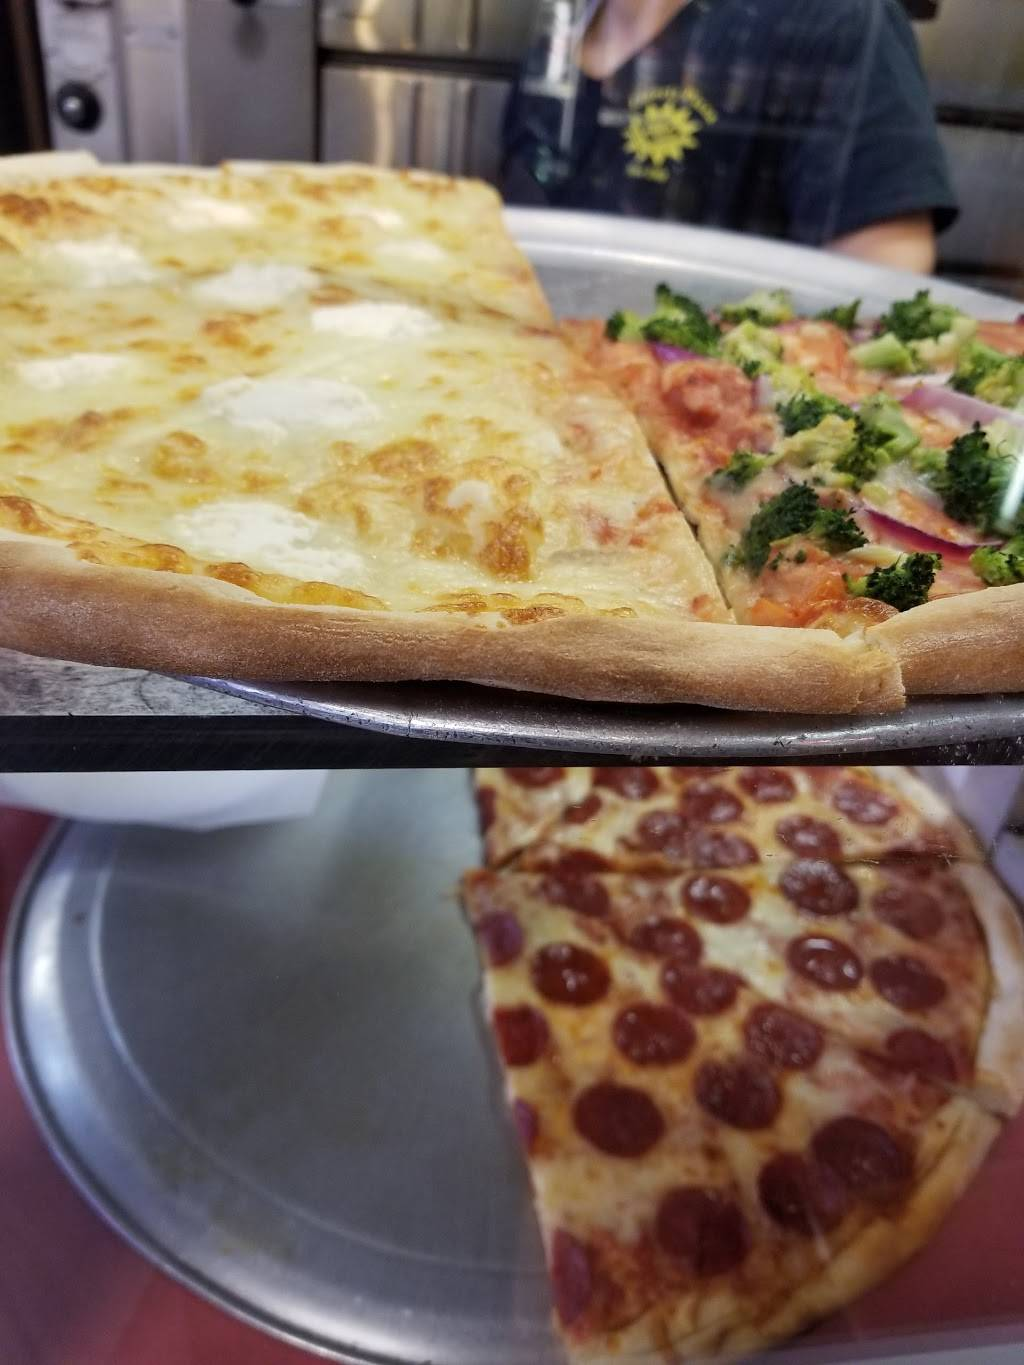 Liberty Pizza | meal delivery | 482 Myrtle Ave, Brooklyn, NY 11205, USA | 7187890600 OR +1 718-789-0600